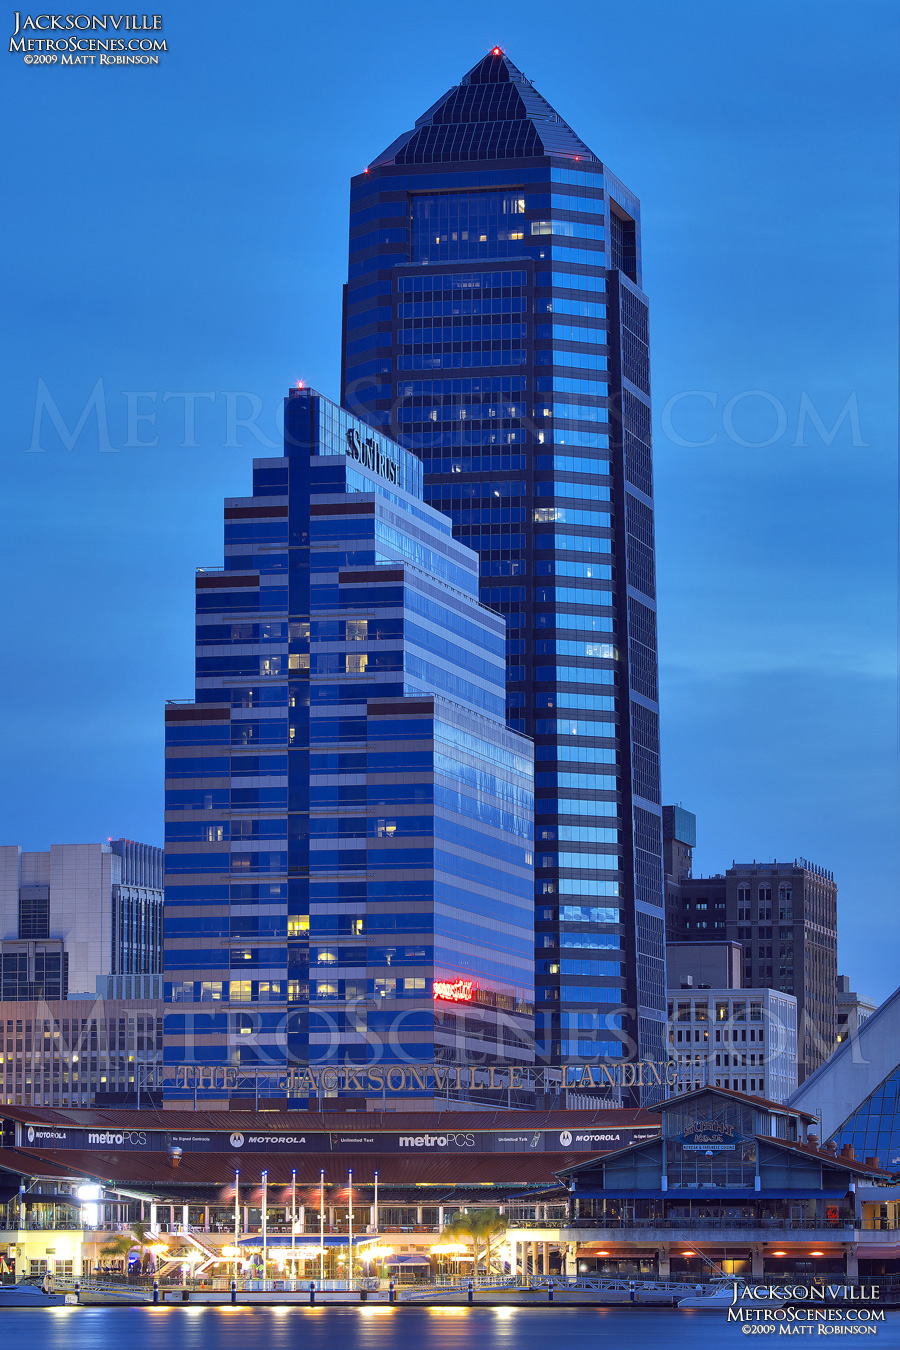 Bank of America Tower, Jacksonville, Fl